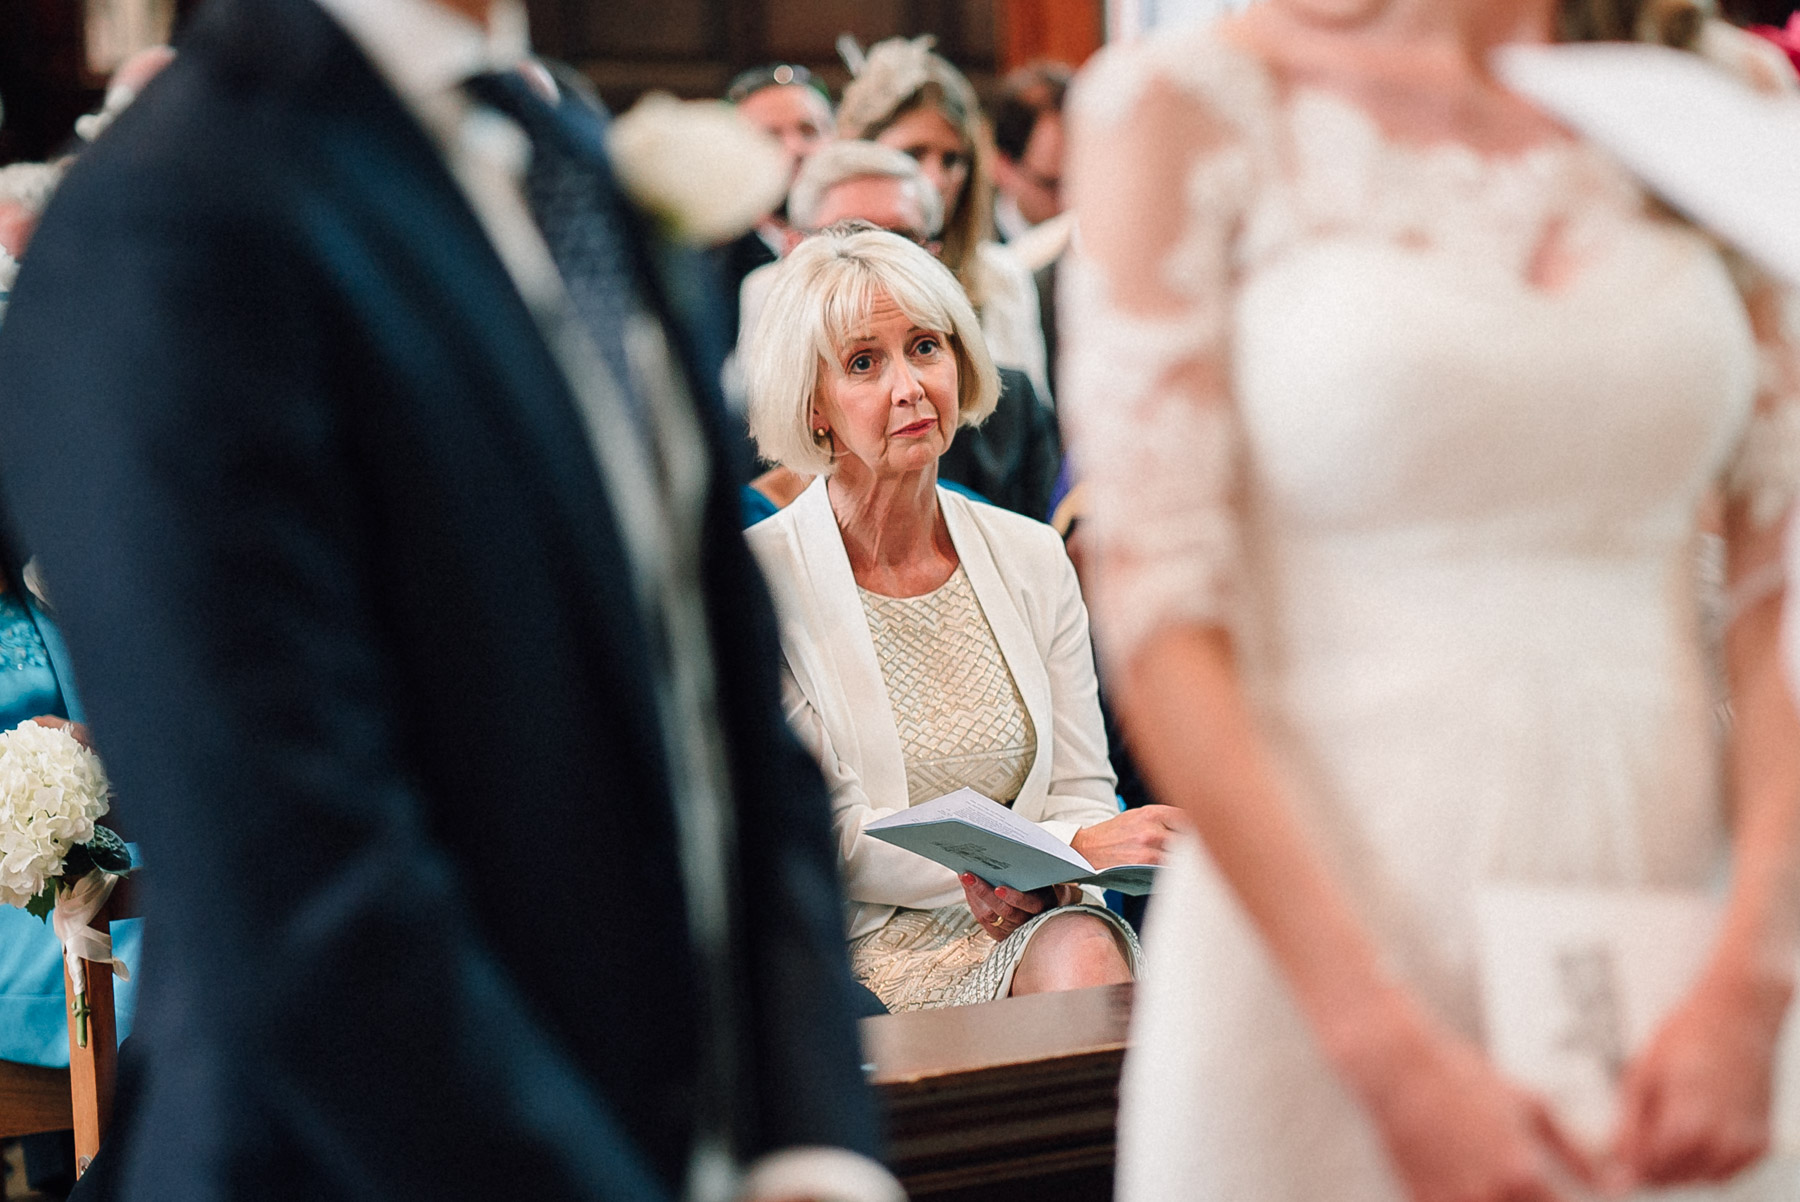 An emotional mum during the wedding ceremony in Surrey